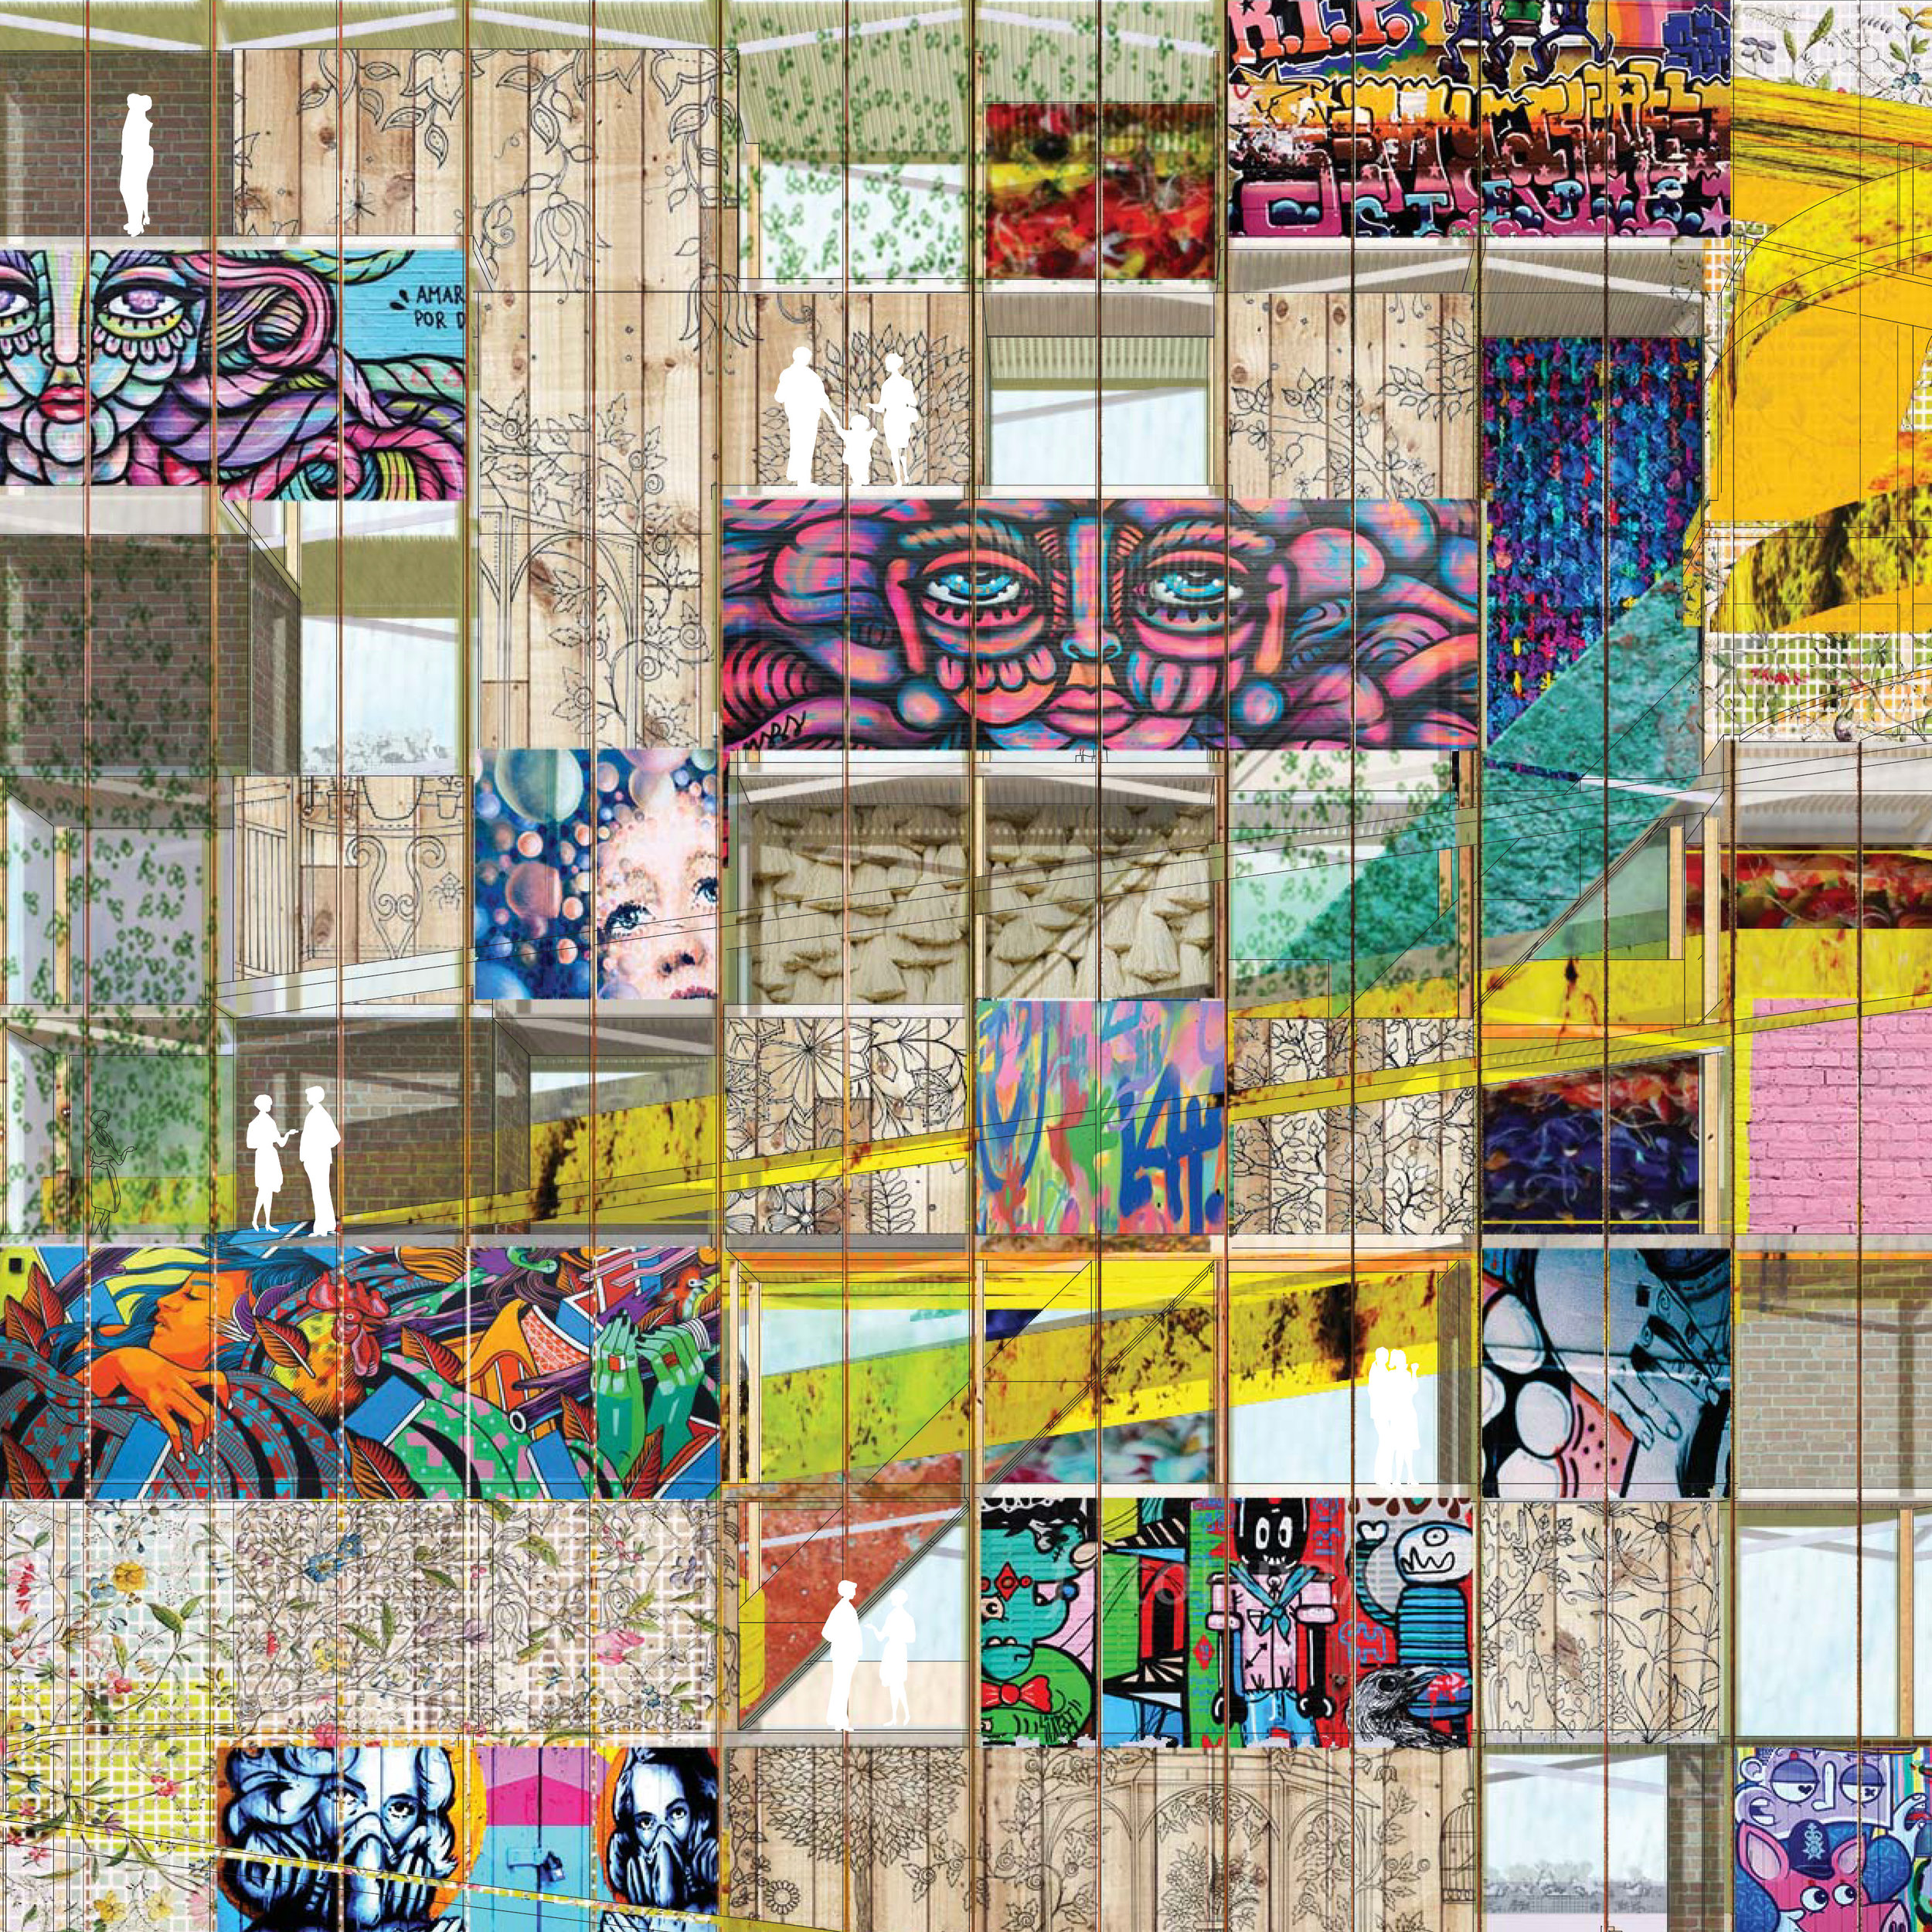 — what if reframing two stereotypes erases both of those stereotypes? - graffitea garden| public space design & program strategy